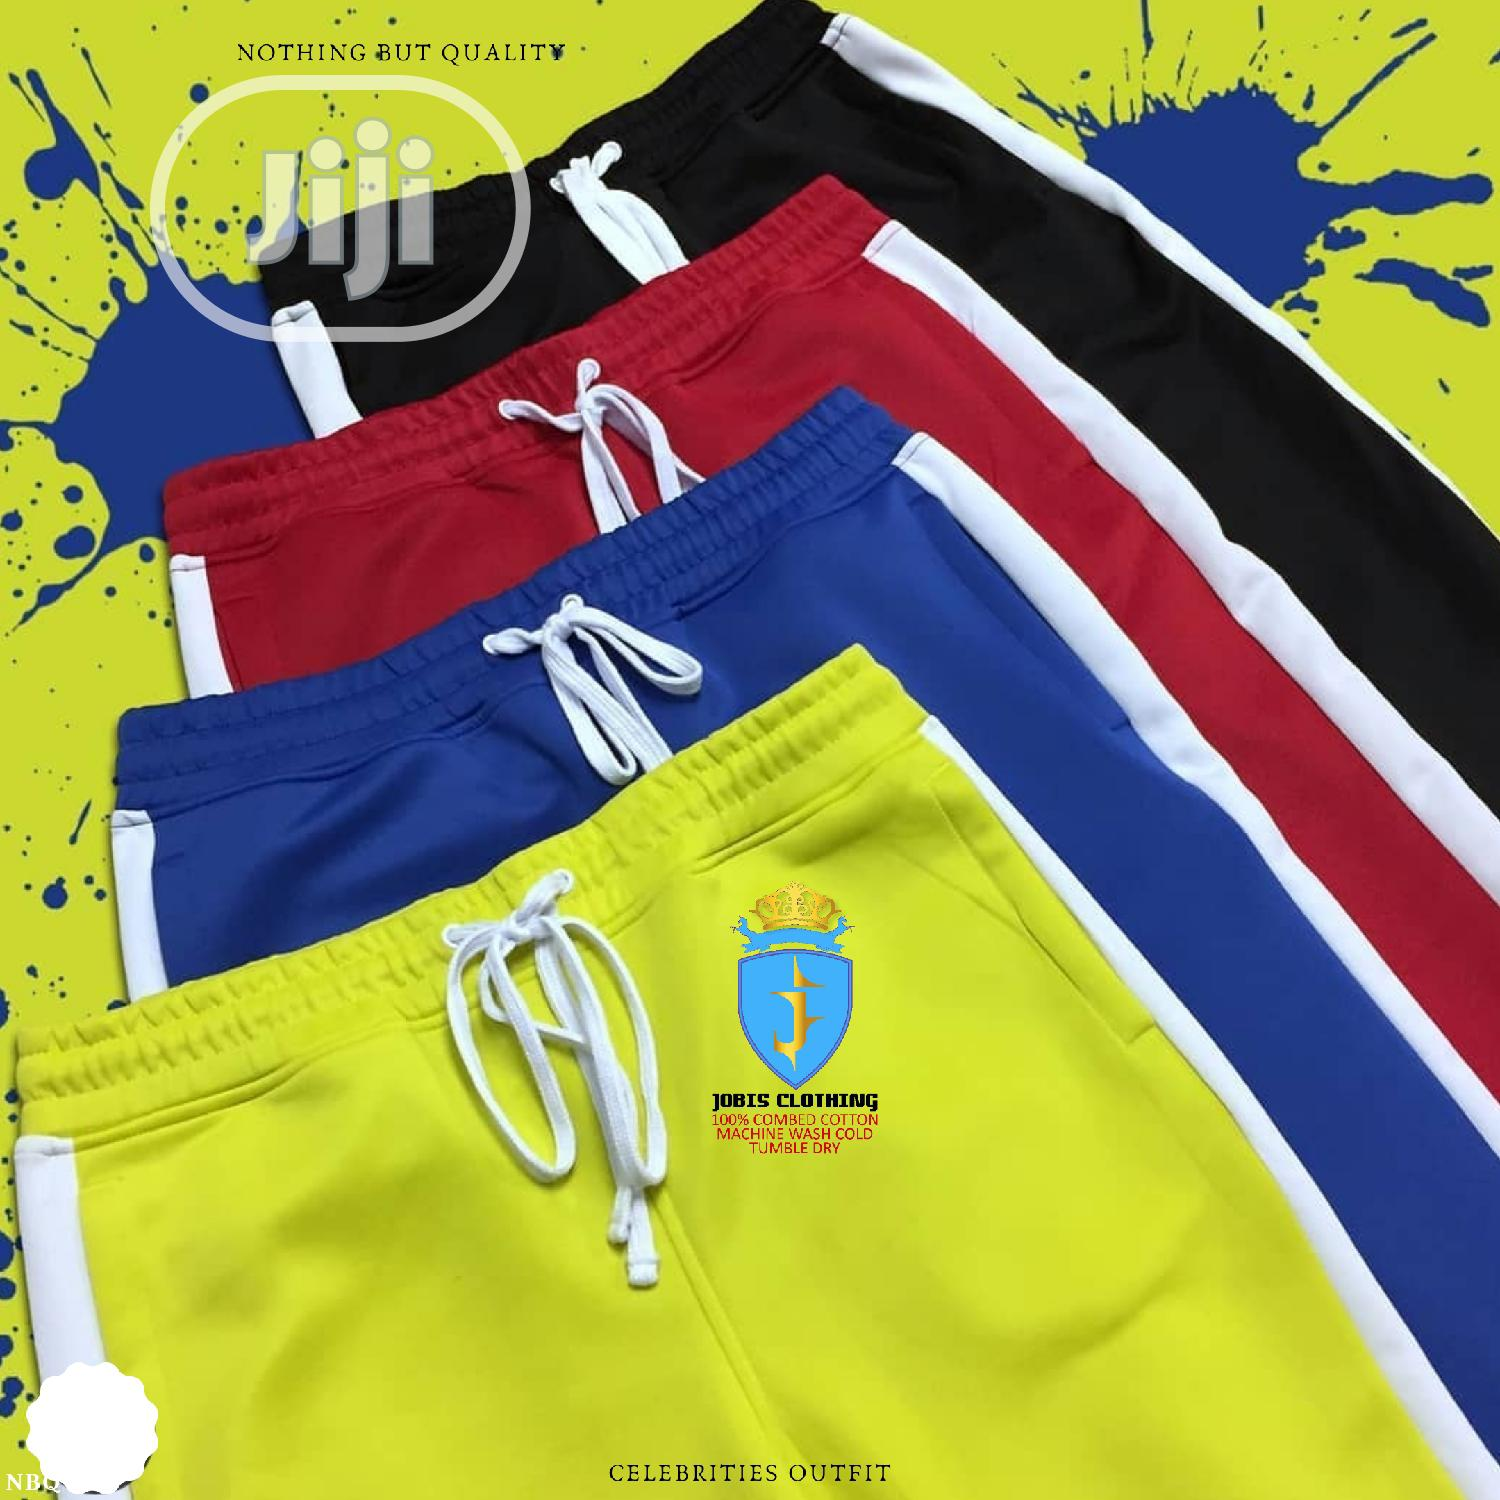 4pcs Unisex Cotton Trackpant Outfit   Clothing for sale in Lekki, Lagos State, Nigeria